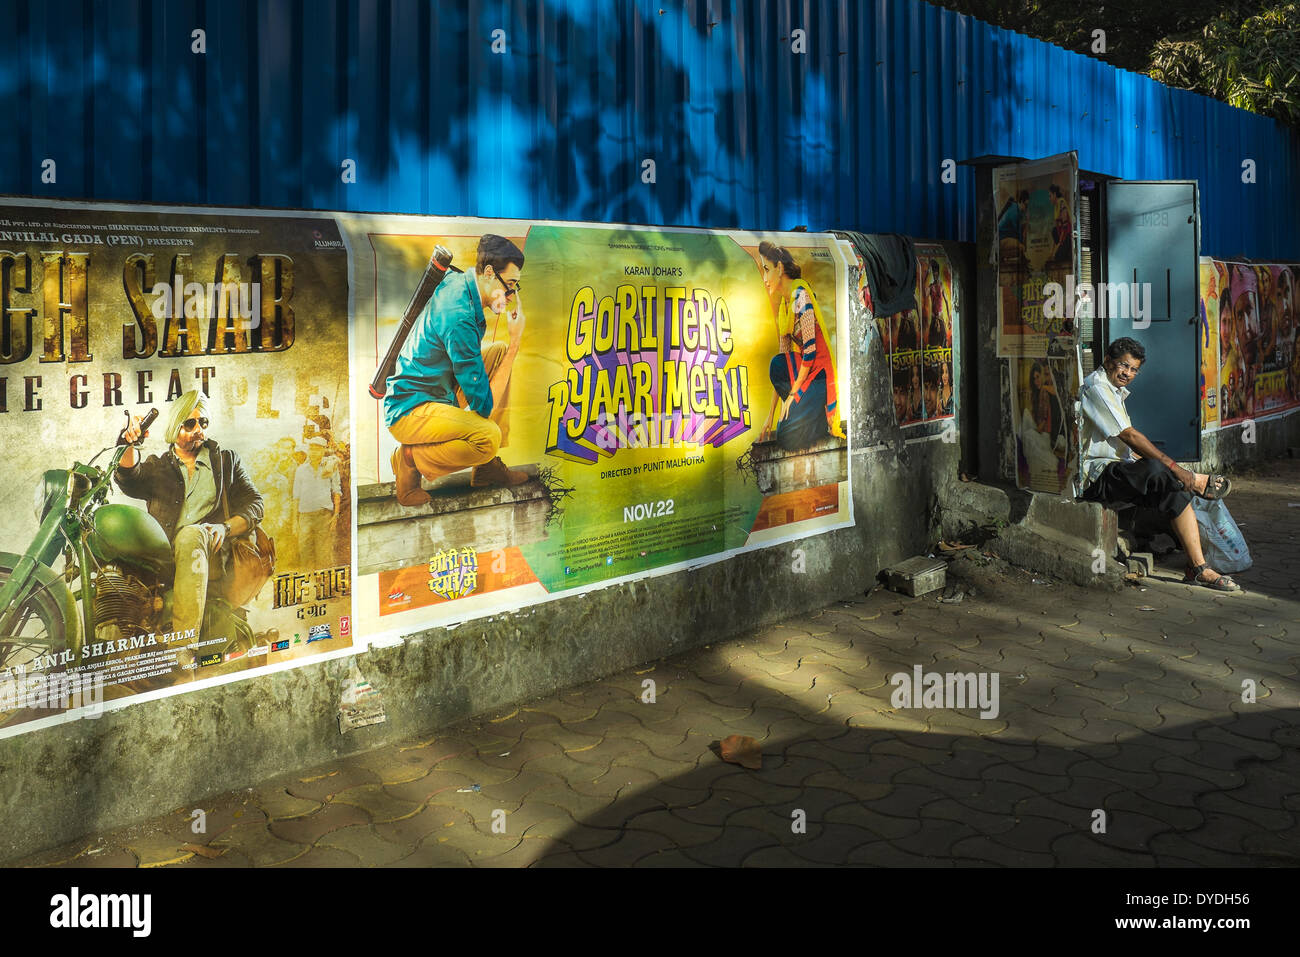 A telephone repairman takes break at an open junction box along a wall displaying Bollywood movie posters. Stock Photo